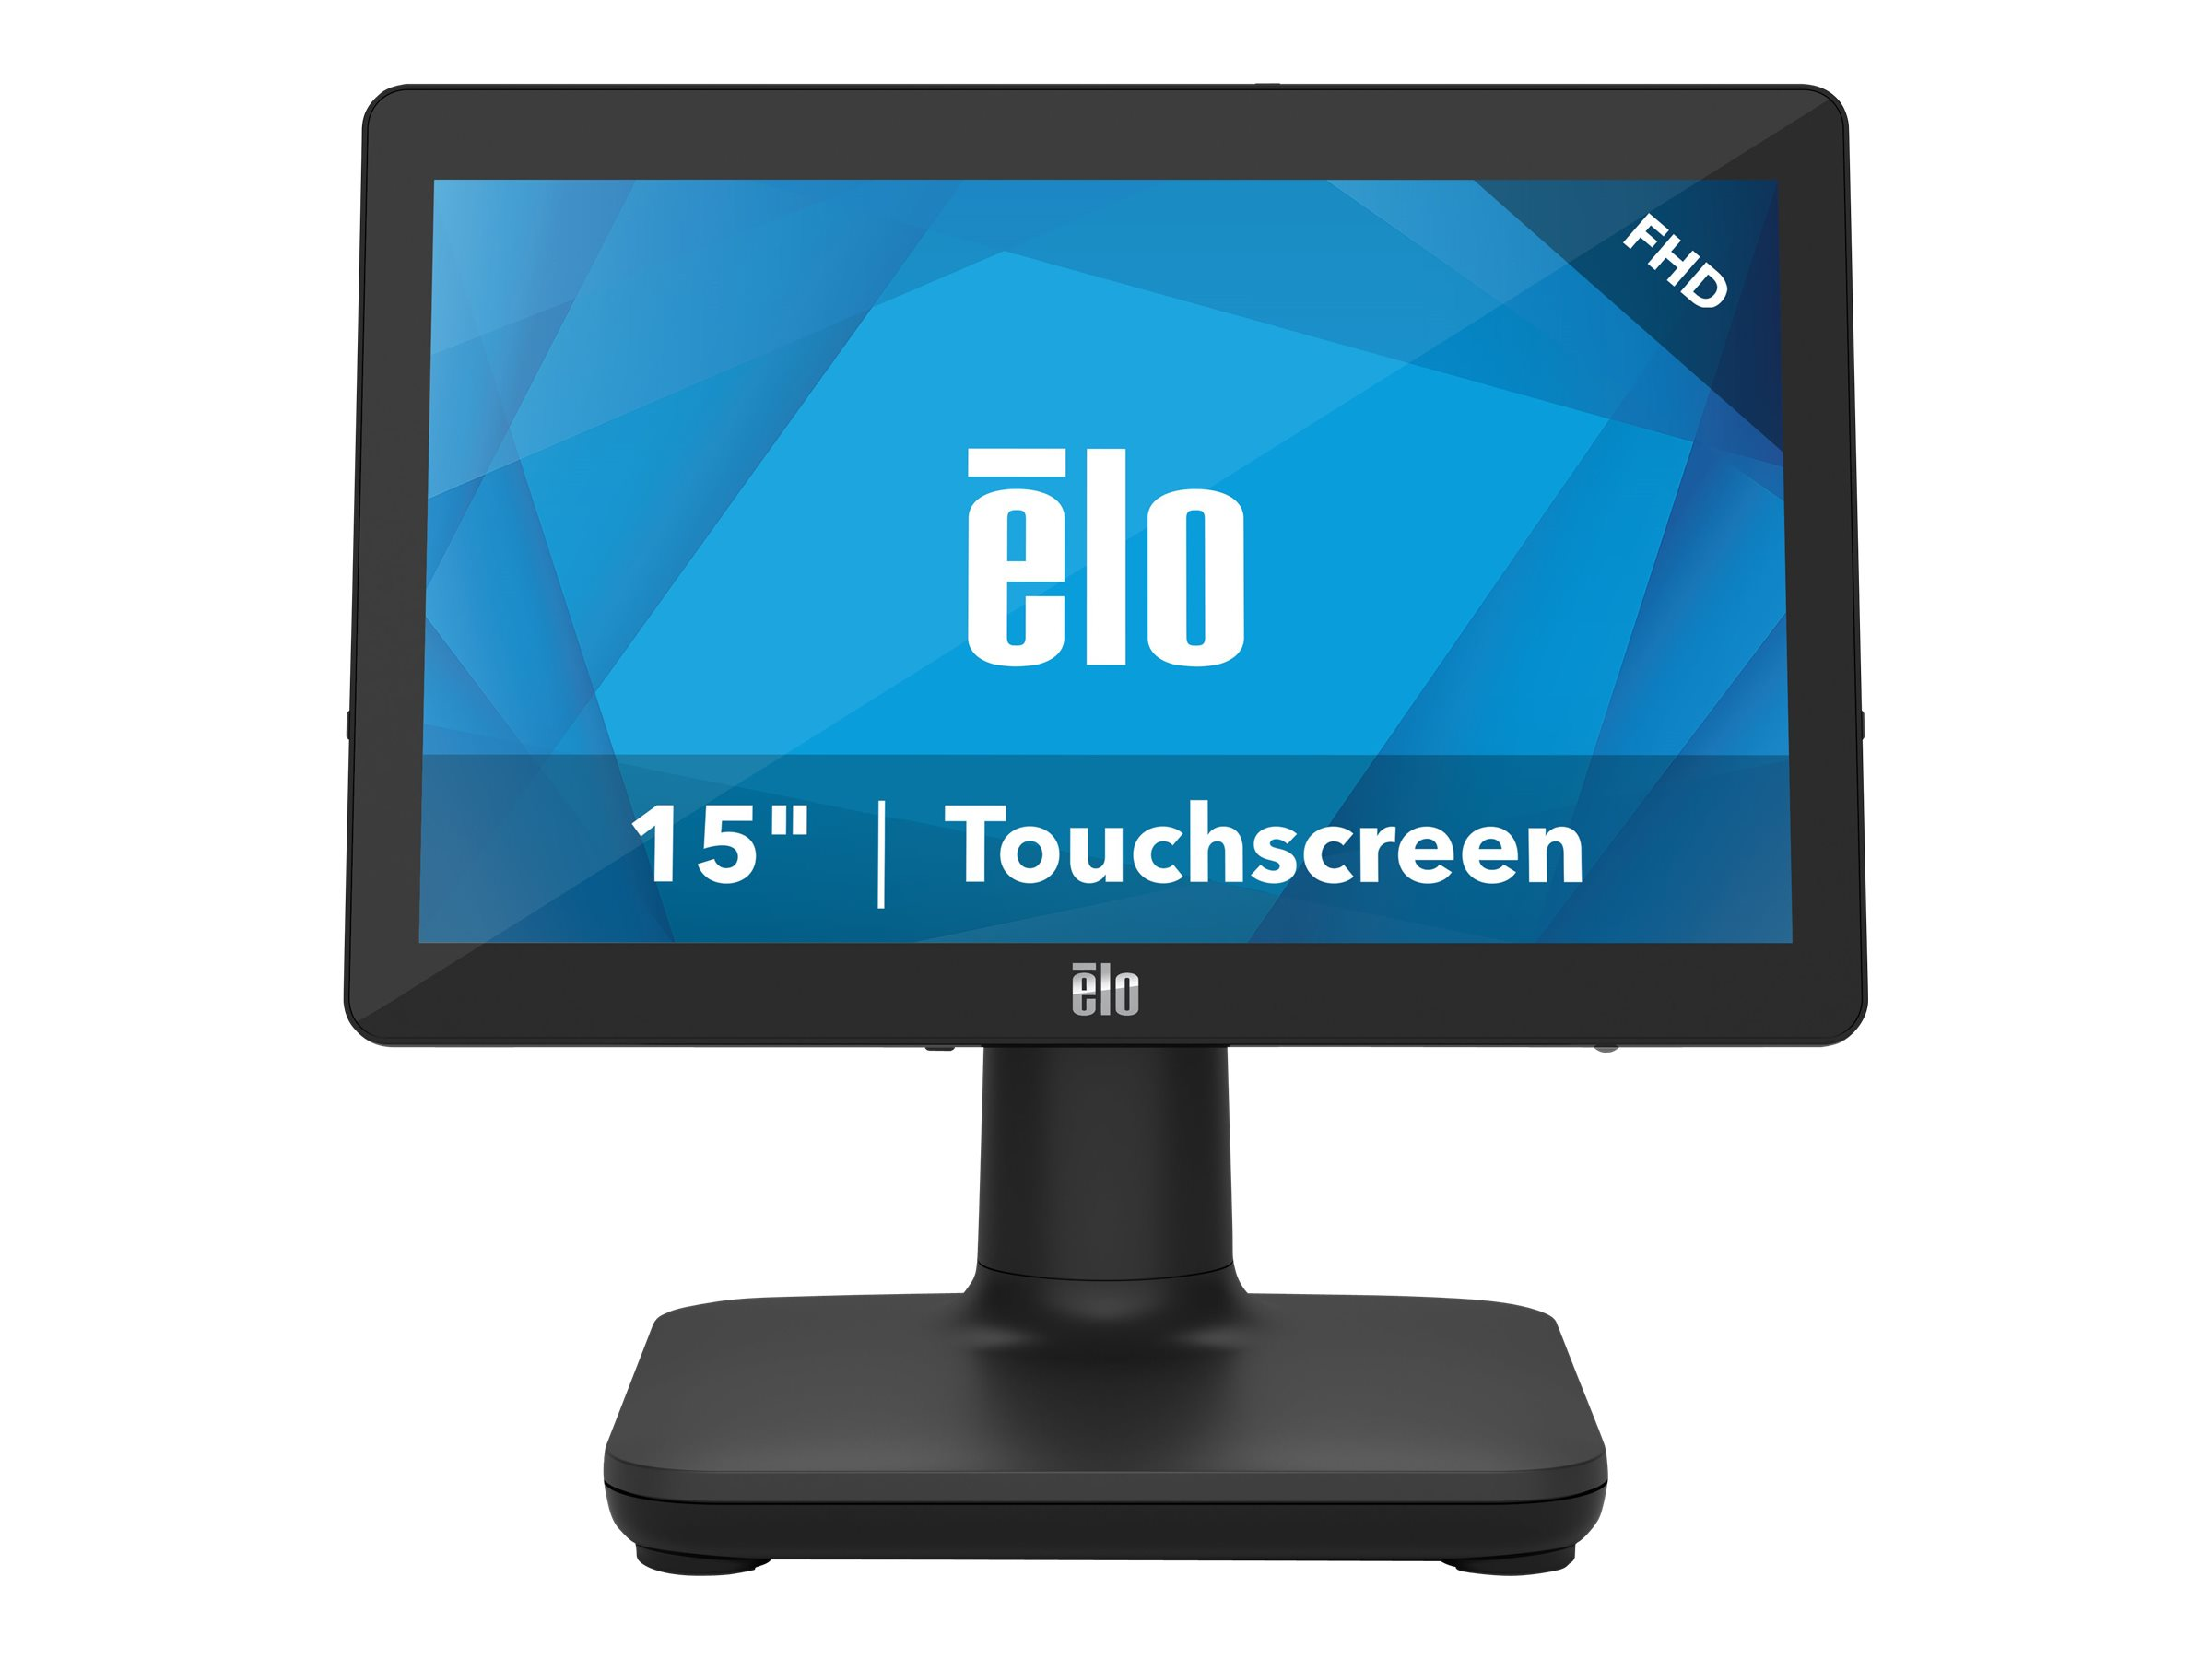 EloPOS System - with I/O Hub Stand - all-in-one - Core i3 8100T 3.1 GHz - 4 GB - SSD 128 GB - LED 15.6